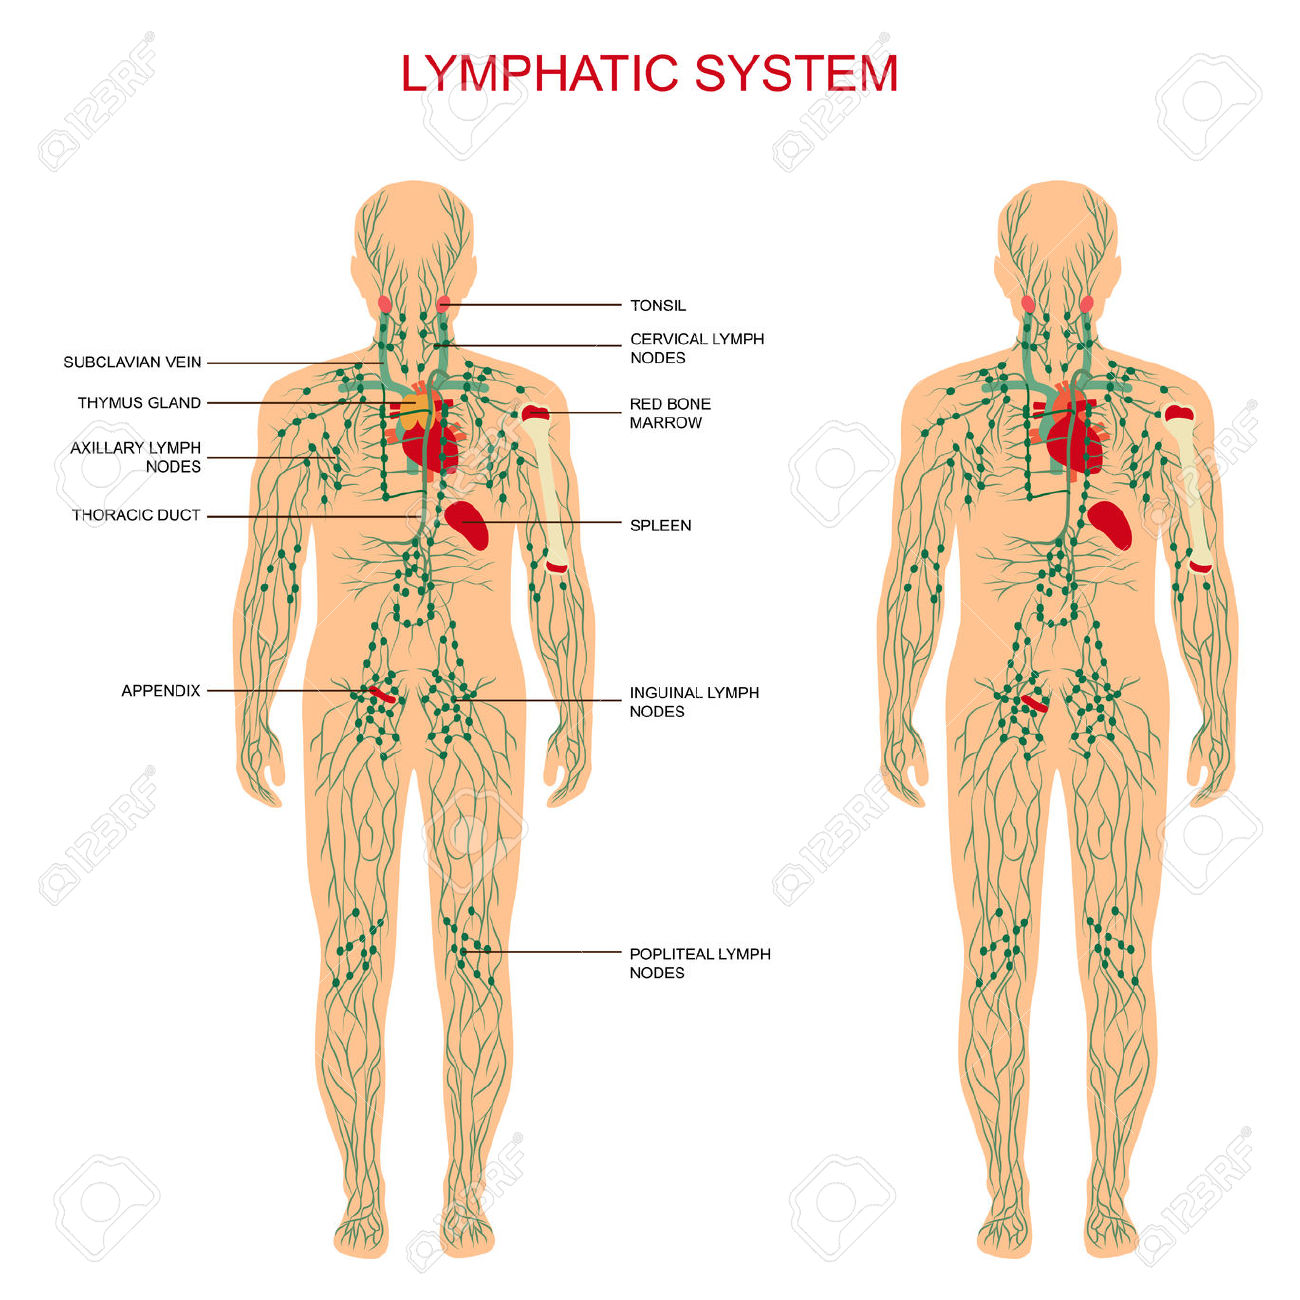 The Lymphatic System Is The Most Crucial System In Your Body